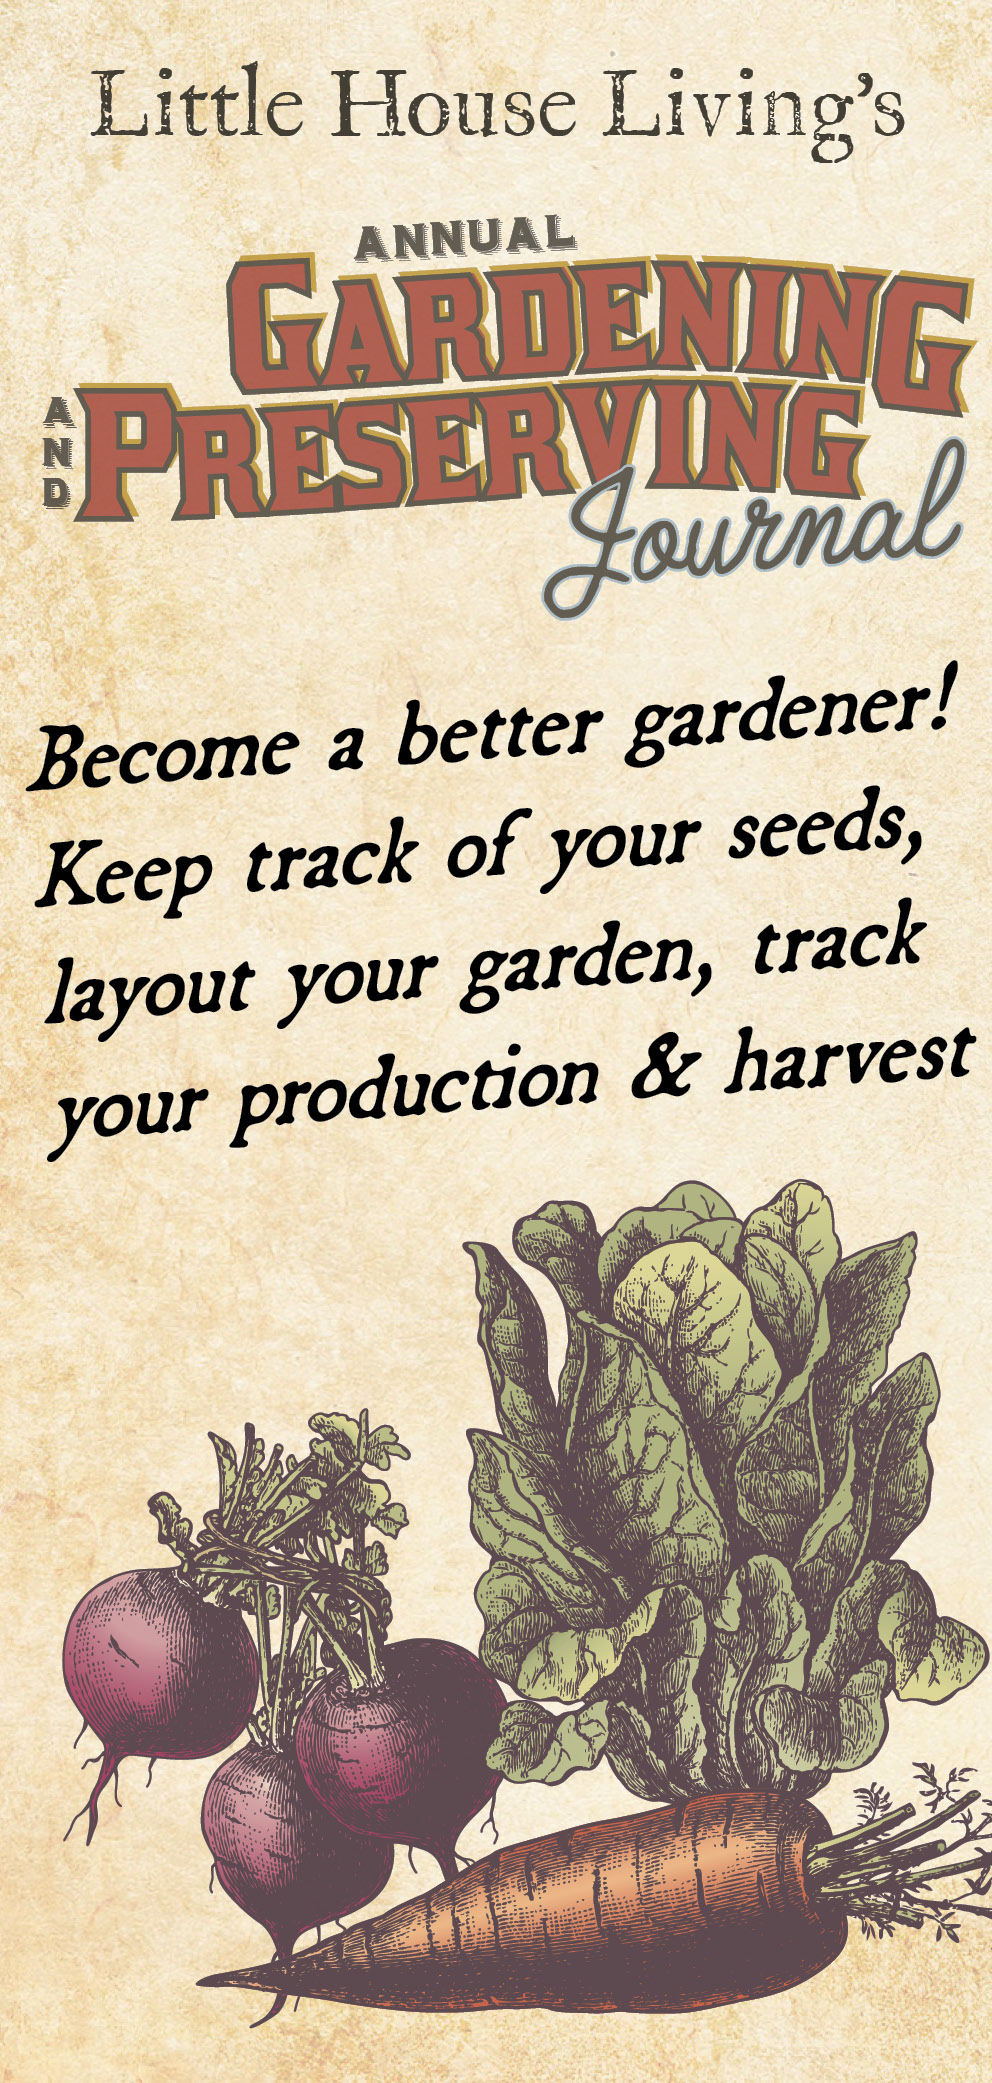 This is the best gardening journal you will ever find because it contains a huge section to keep track of all your home preserved goods as well! Every gardeners must have.  #gardeningjournal #preservingjournal #journals #oldfashionedjournal #homesteadingjournal